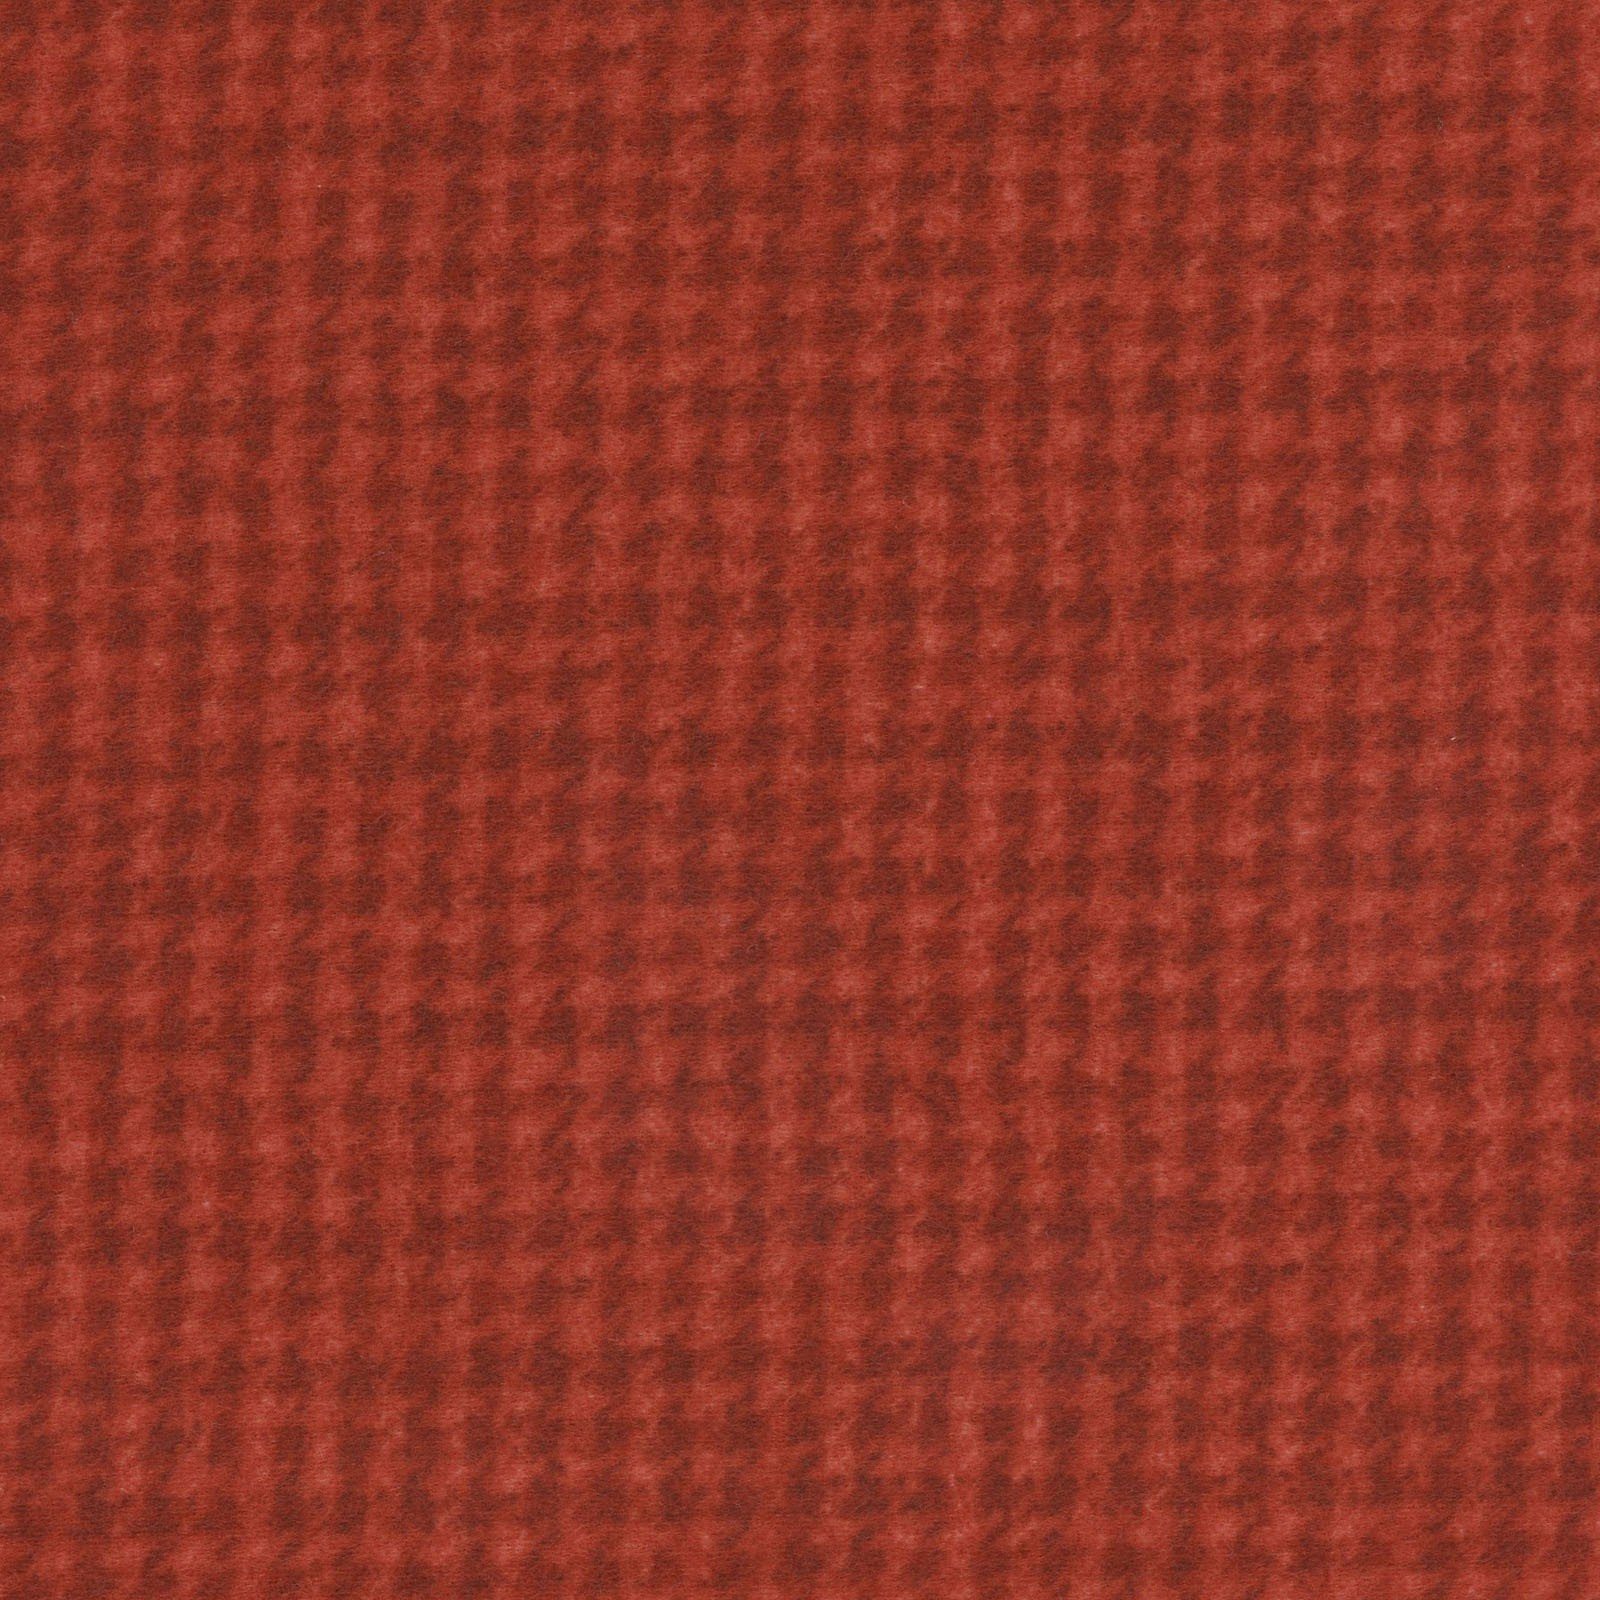 Woolies Flannel Houndstooth Red (MASF18503-R)